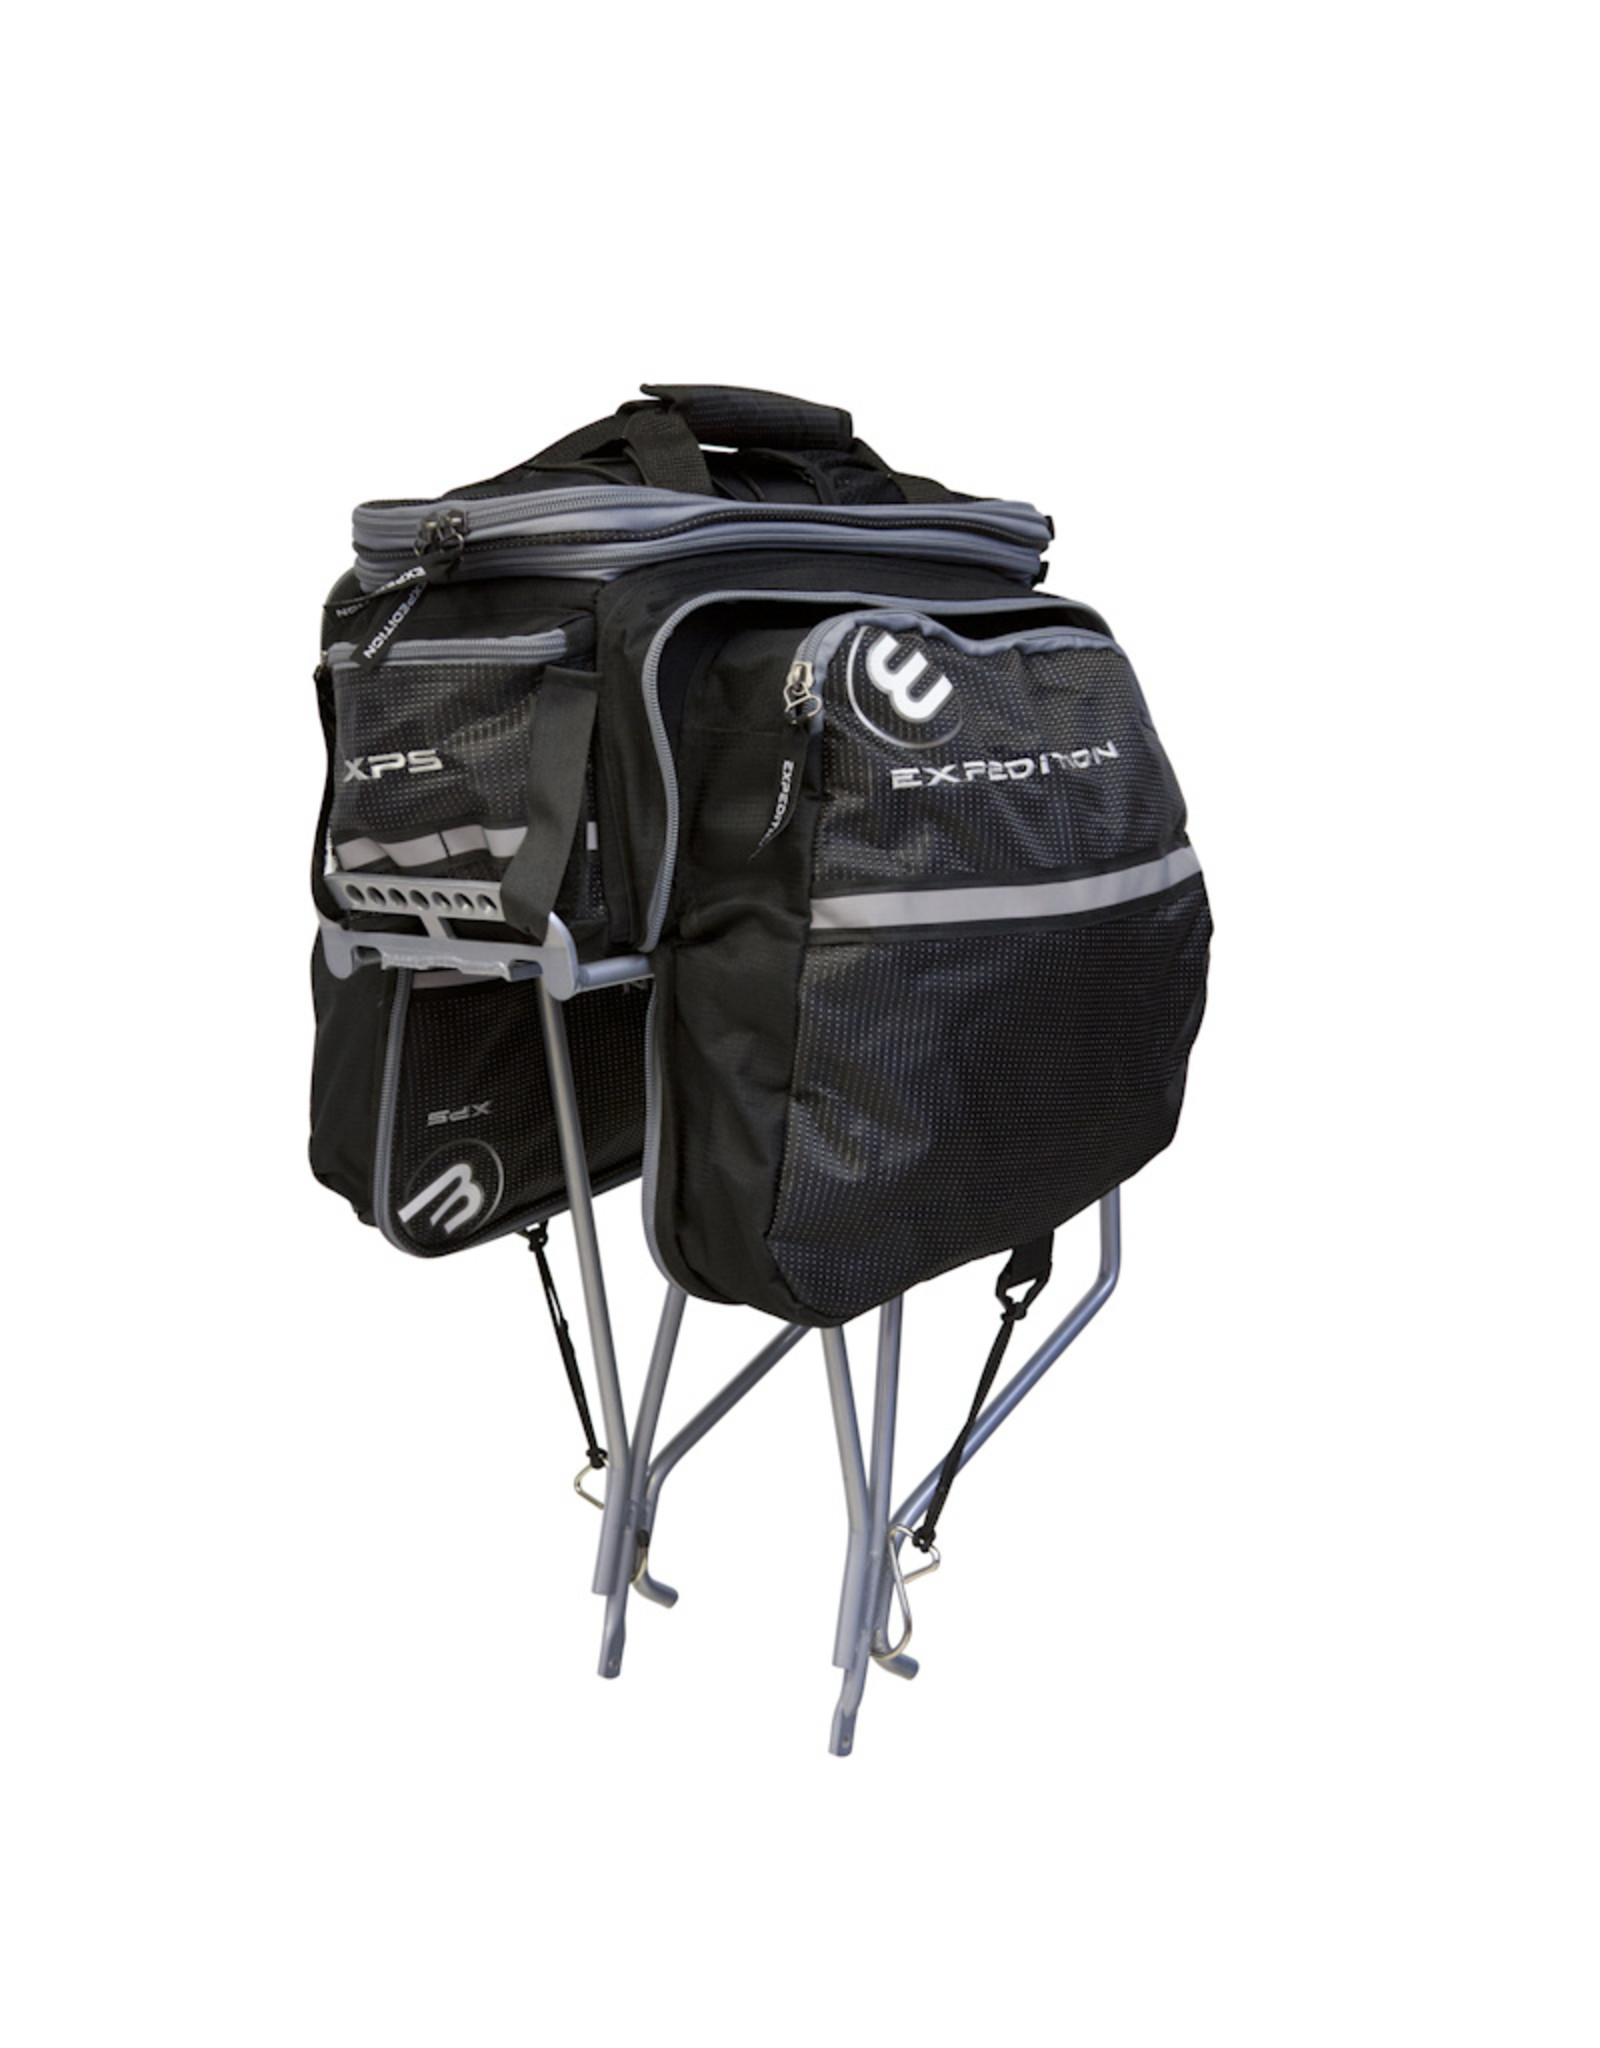 EXPEDITION Sac pour porte-bagage Expedition XPS